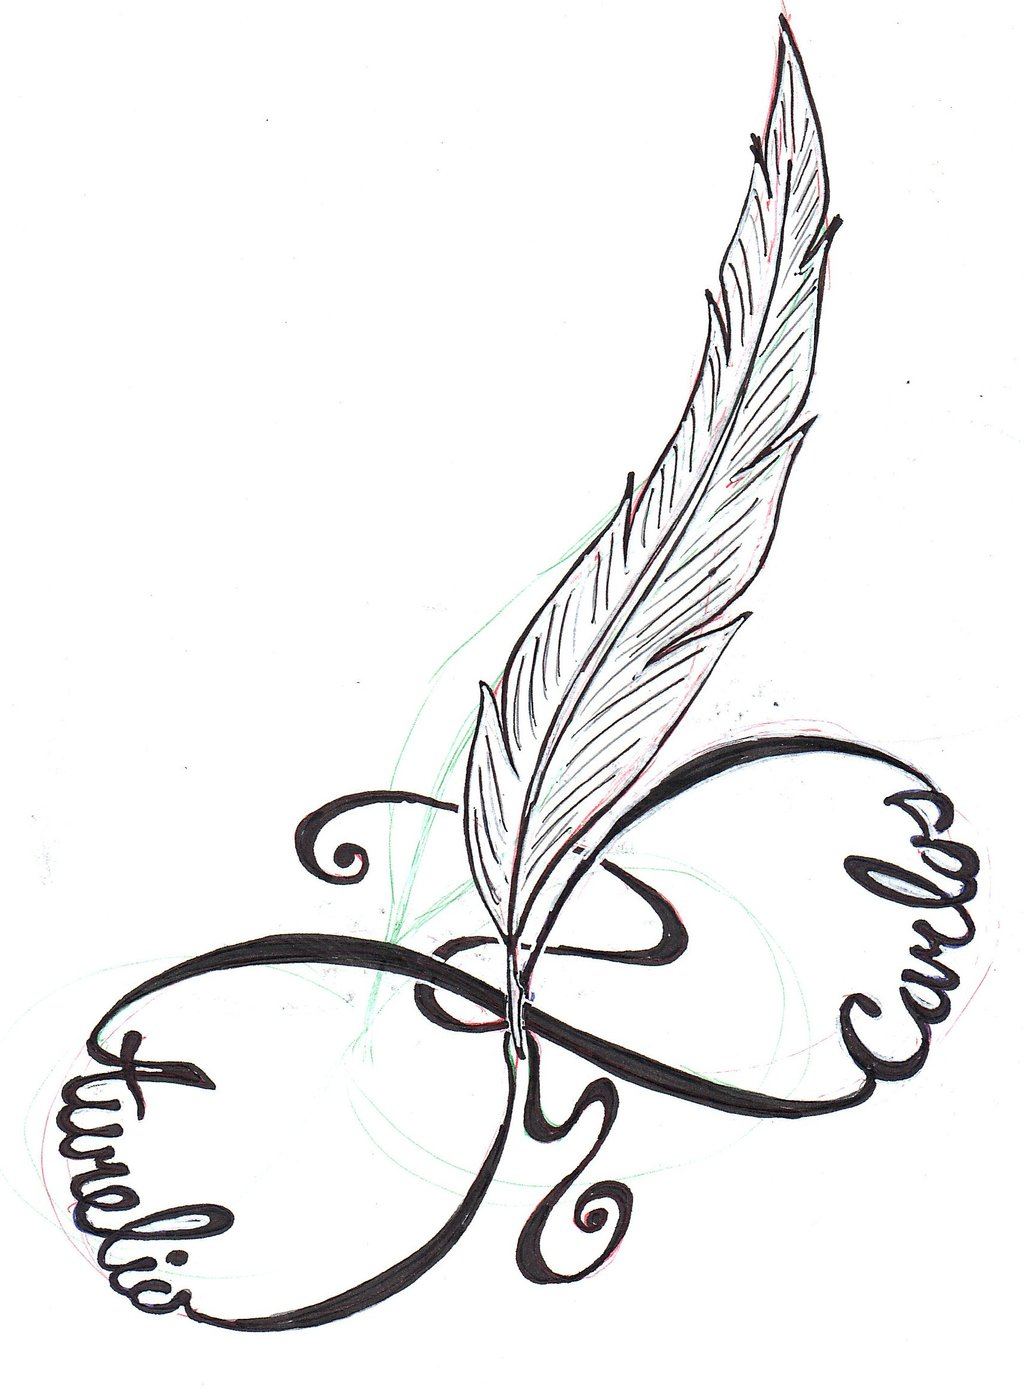 1024x1388 Feather Infinity Tattoo Design By Slk Grafix